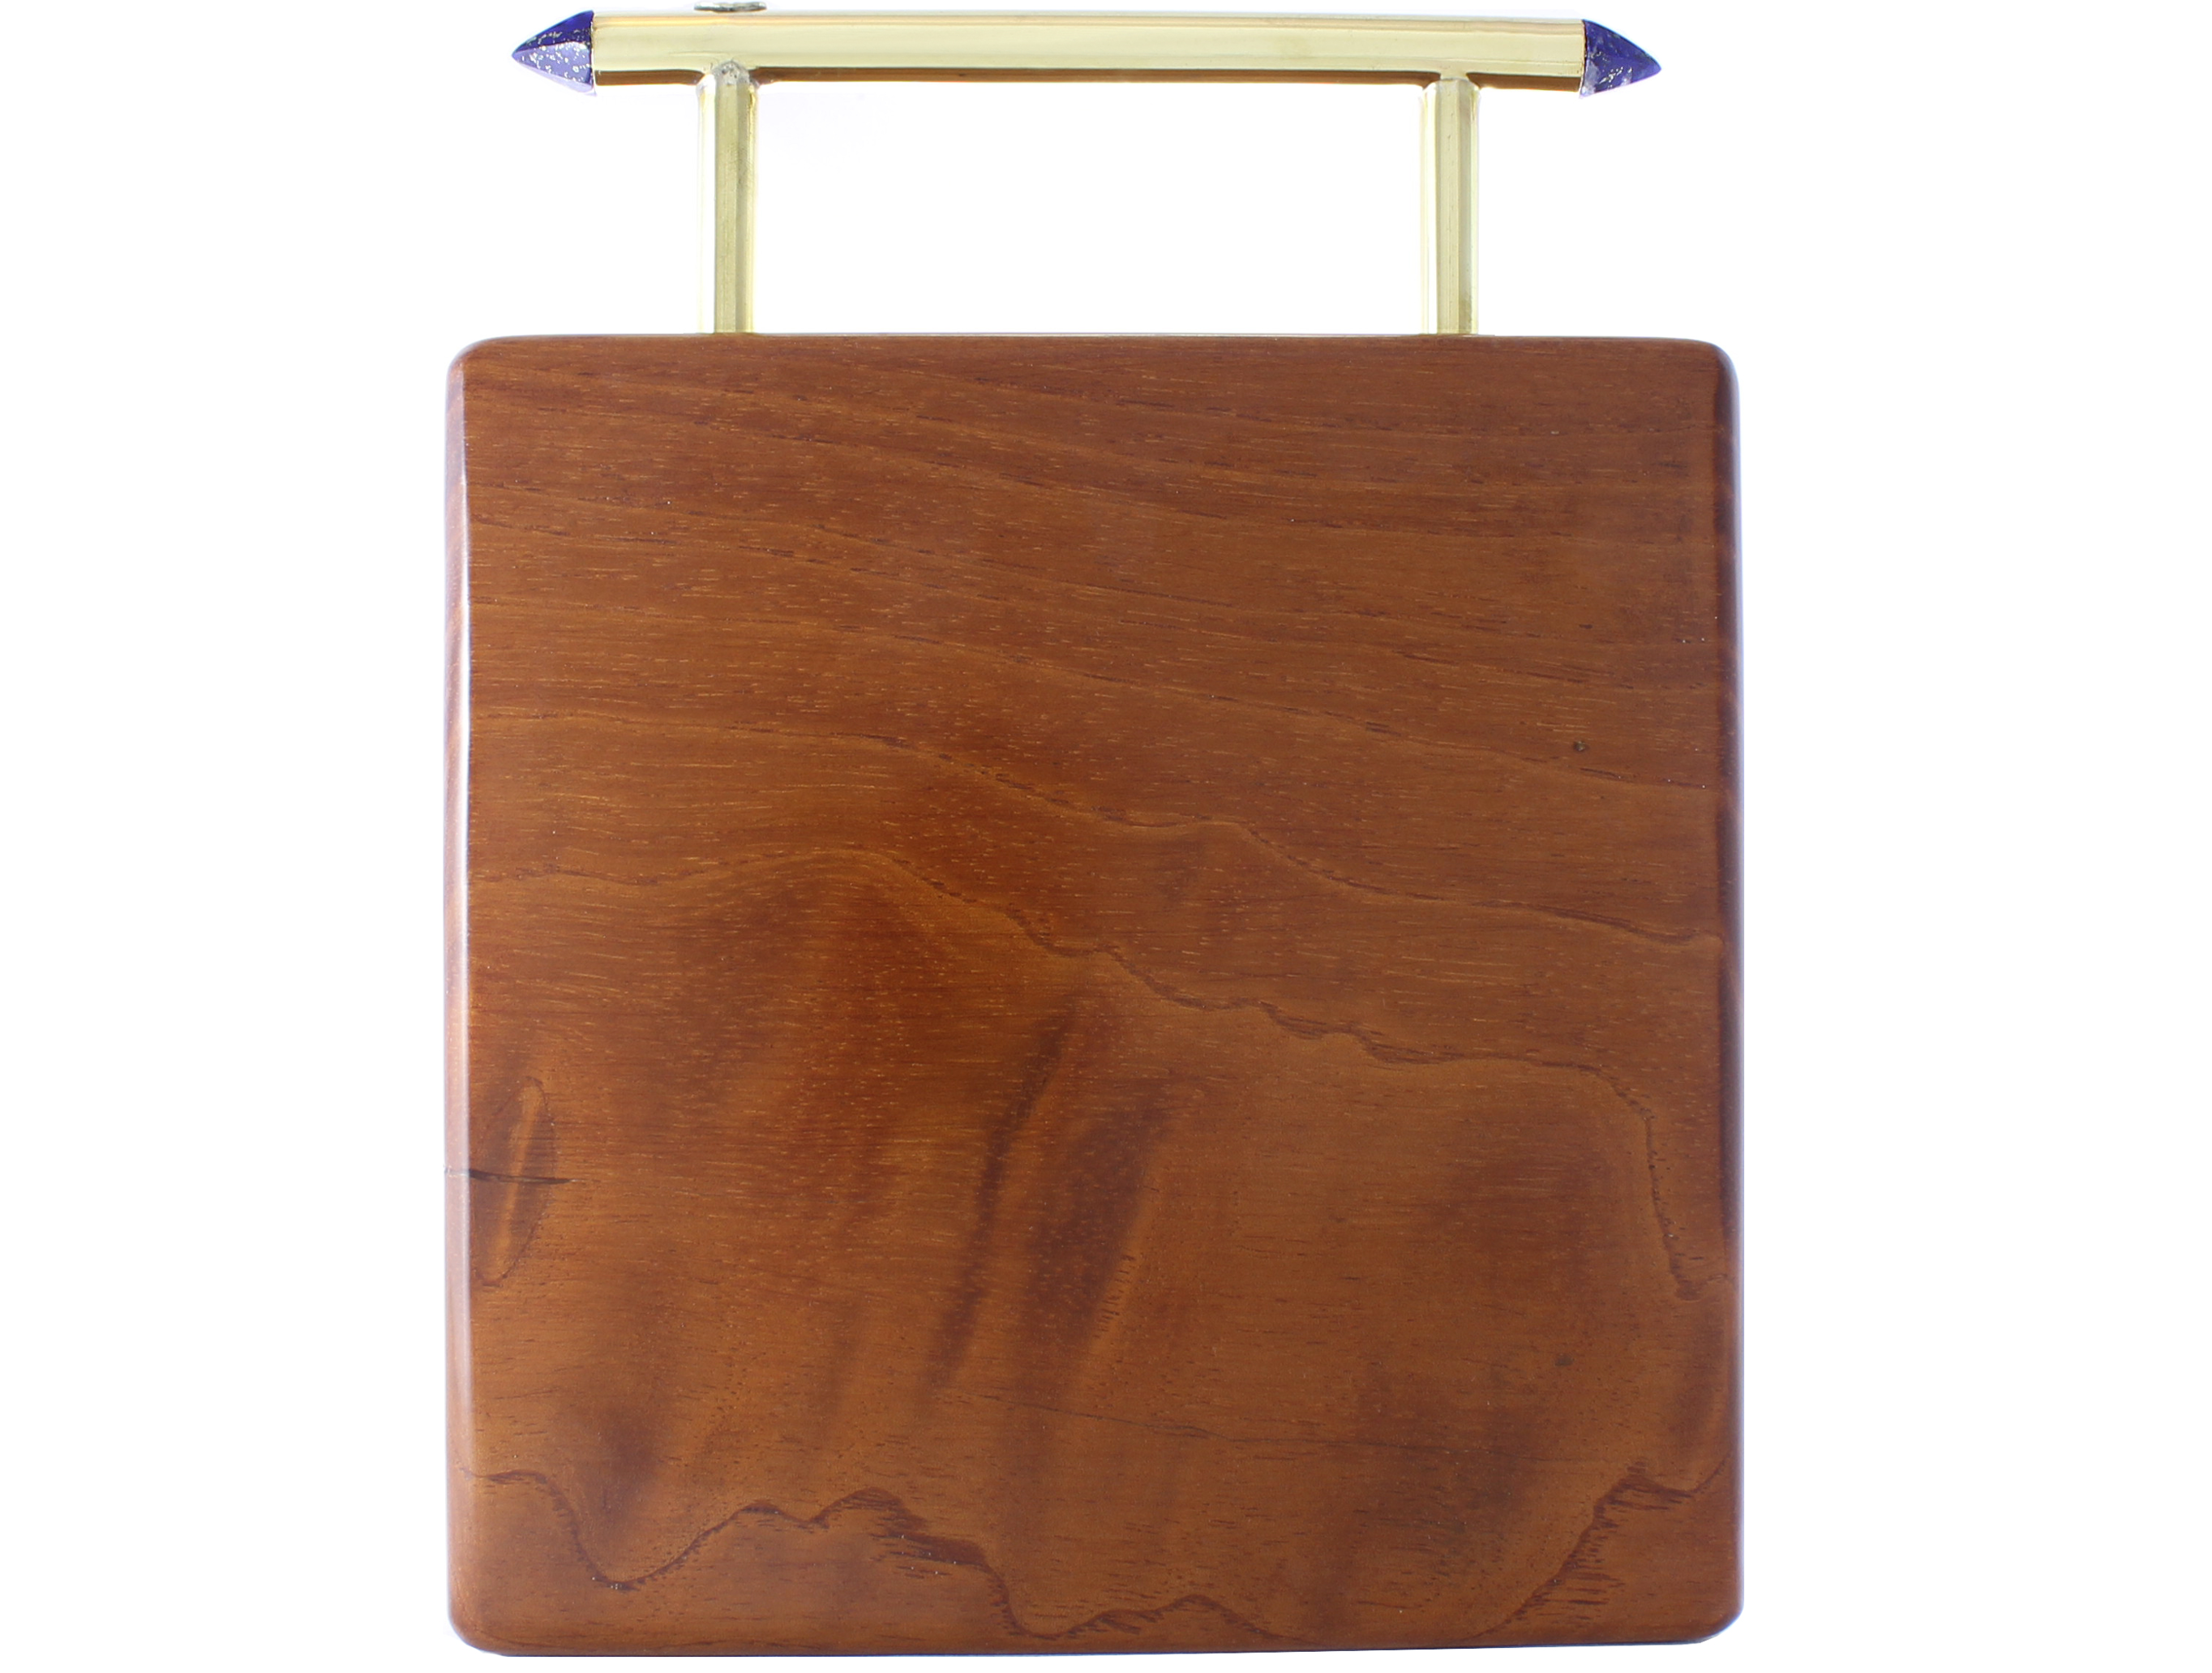 Haya wooden clutch